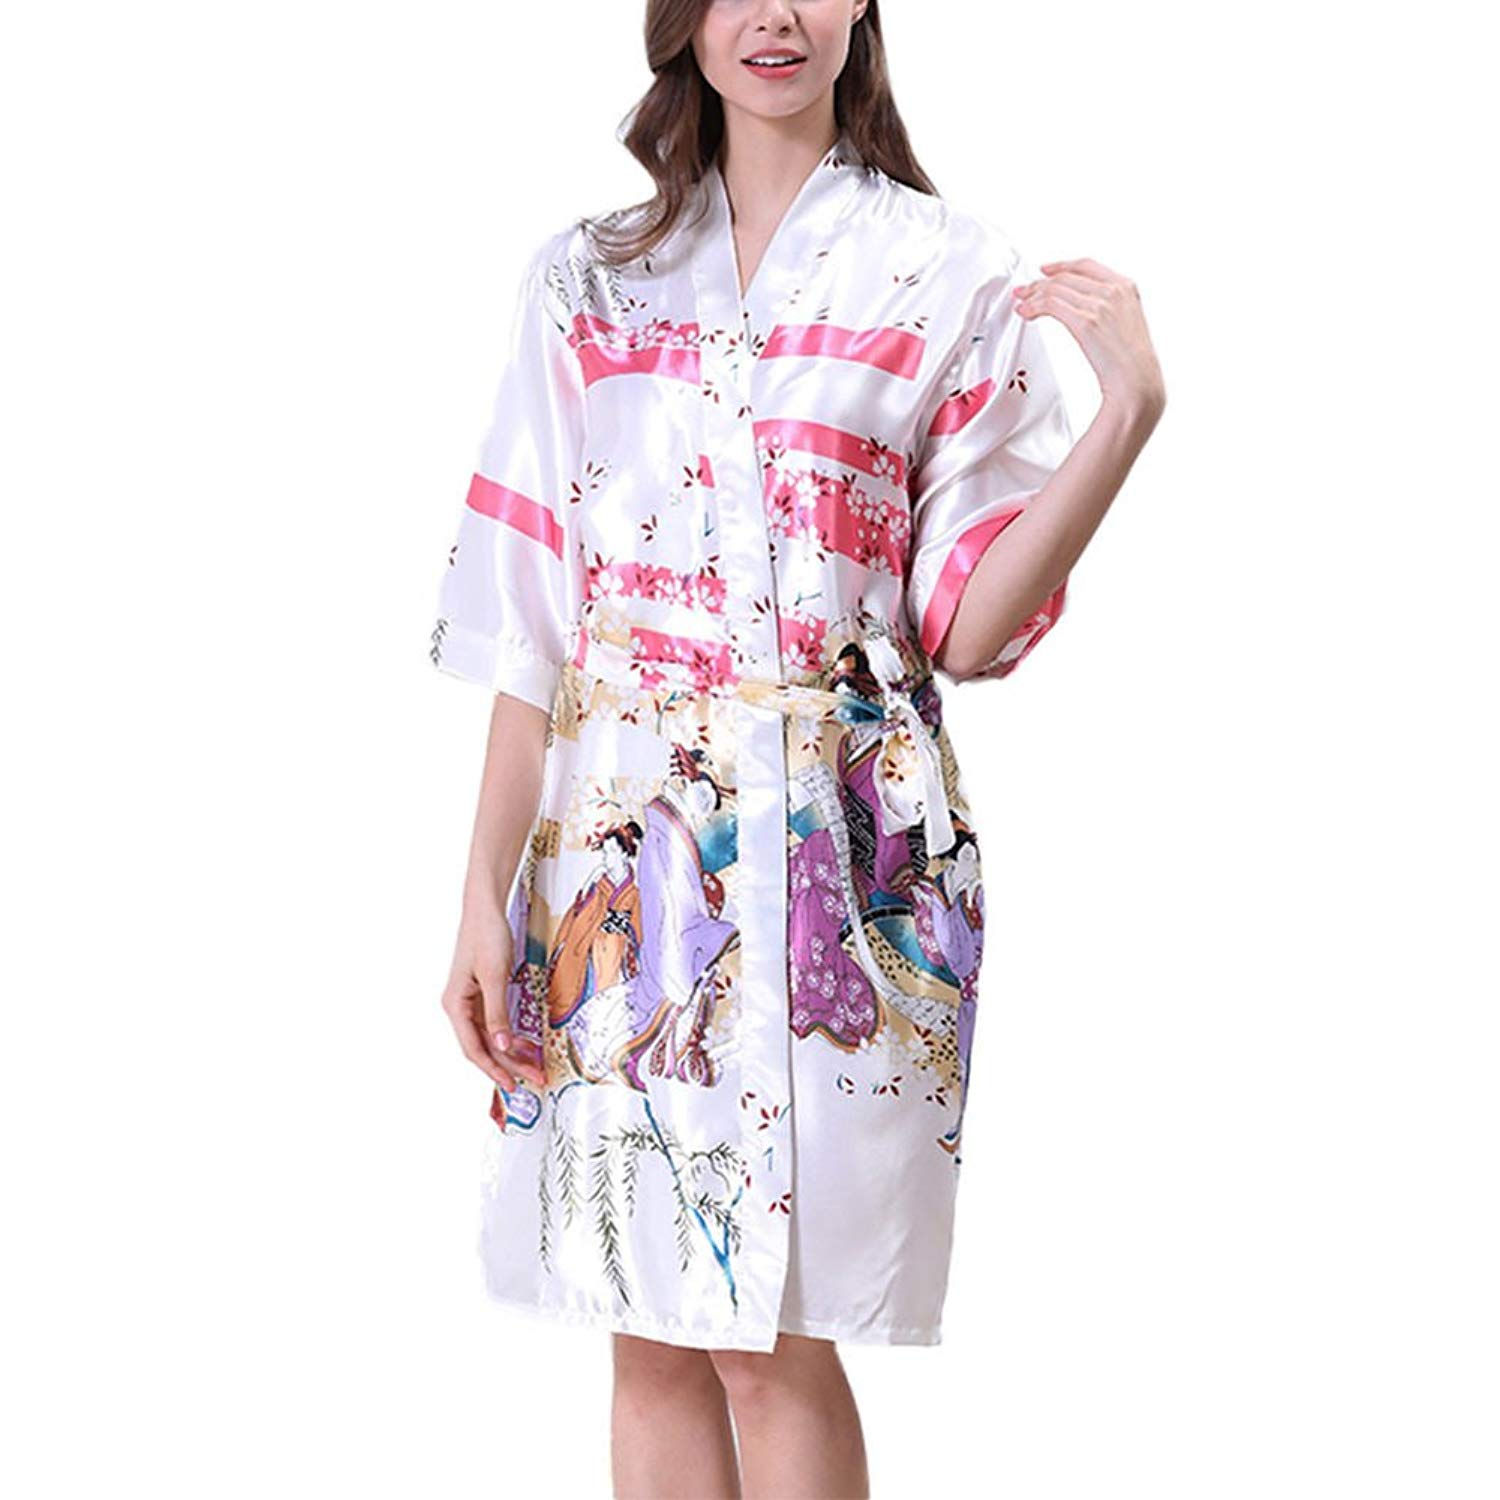 80a6a032c99 Xinvision Women Kimono Printed Satin Silk Nightwear Bathrobe Pyjamas  Nightdress